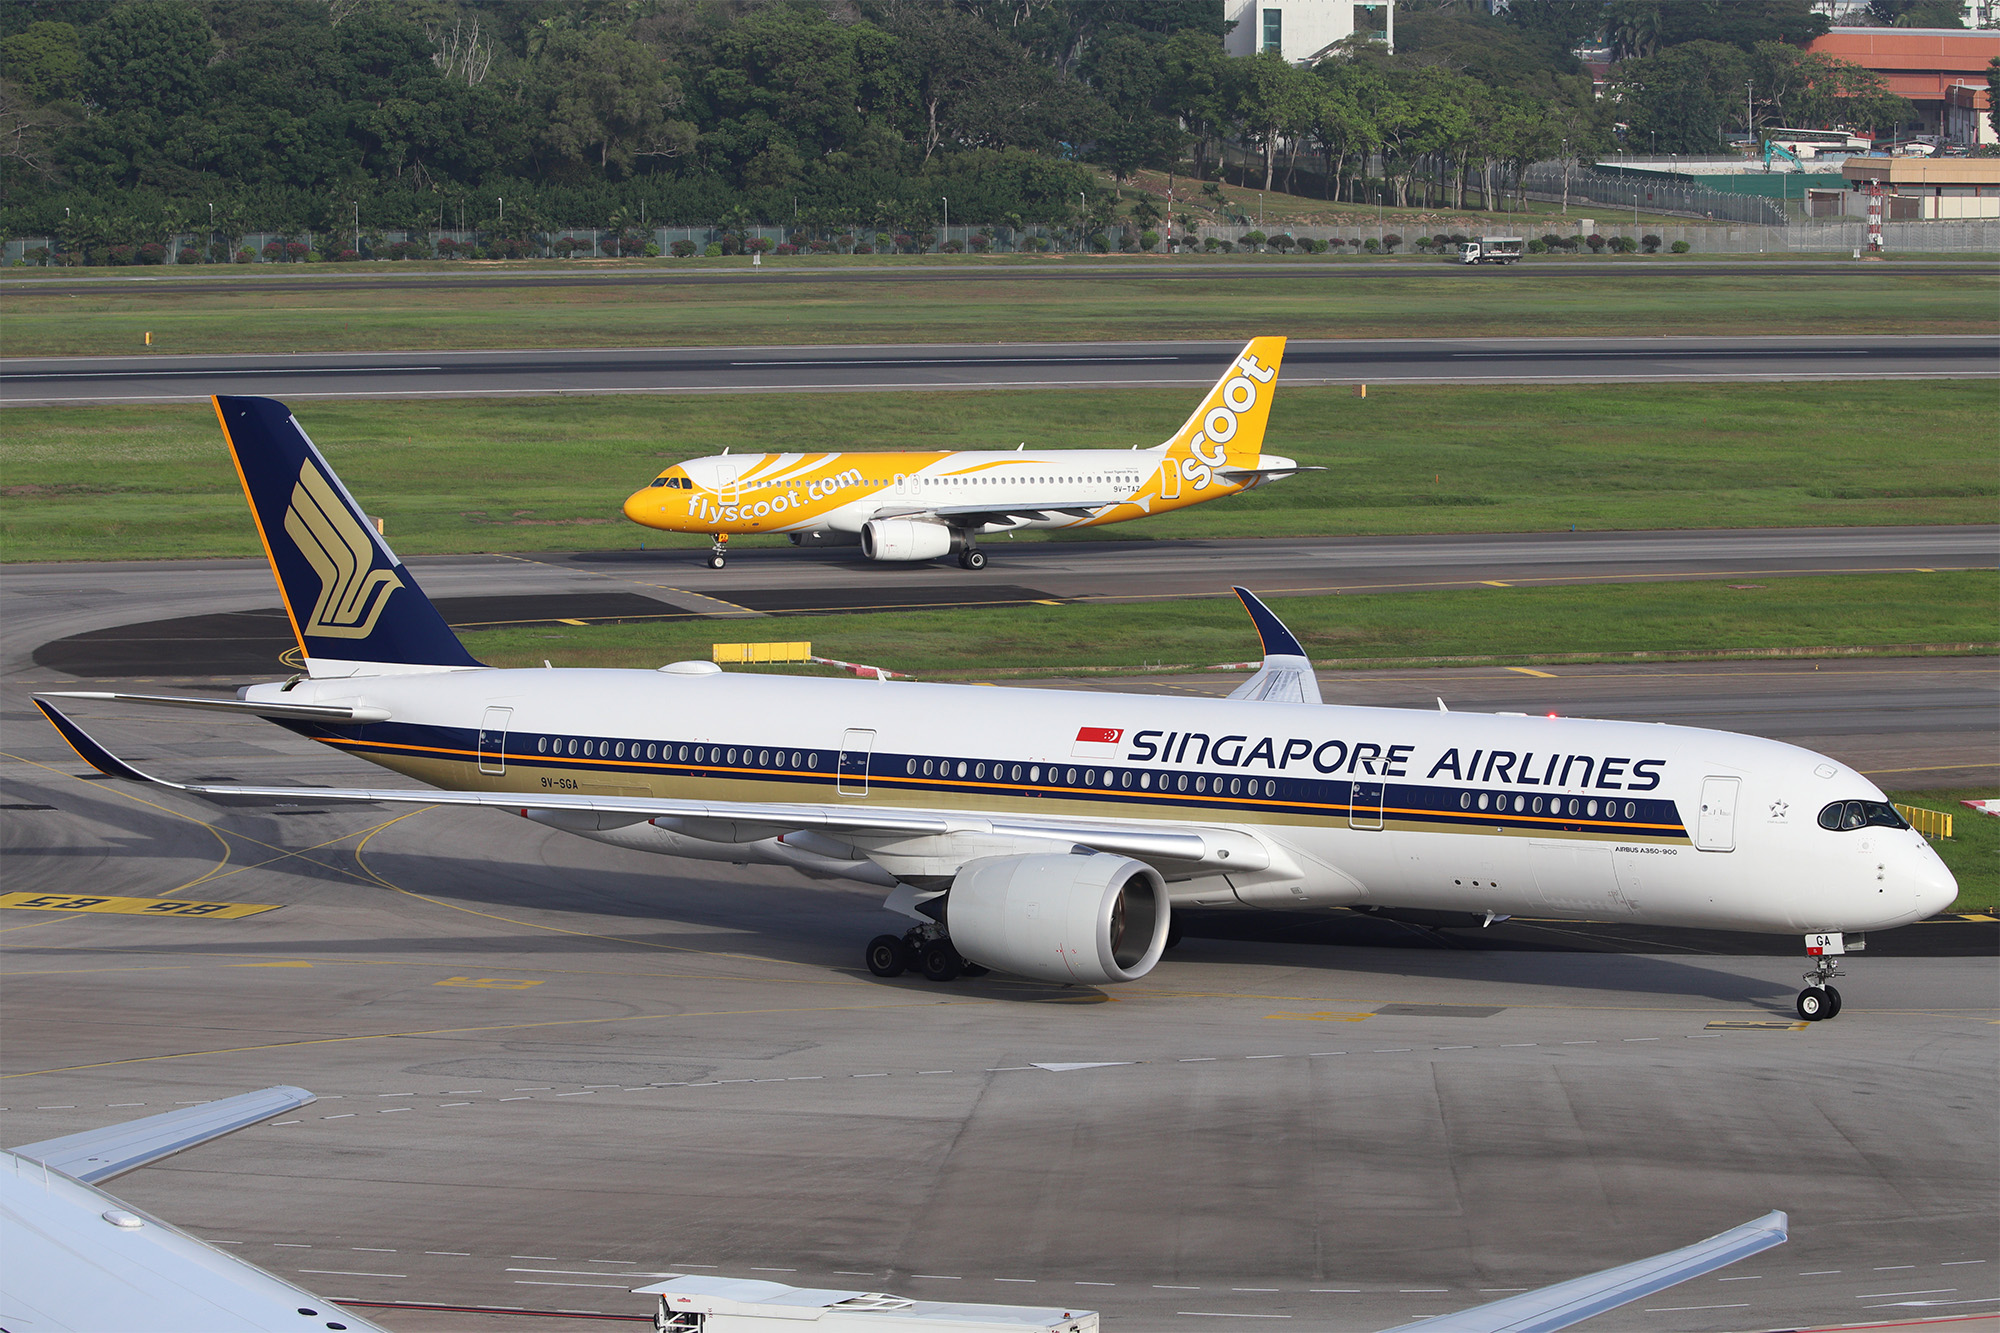 COVID-19: Singapore Airlines and Scoot extend travel waiver and refunds to 31 January